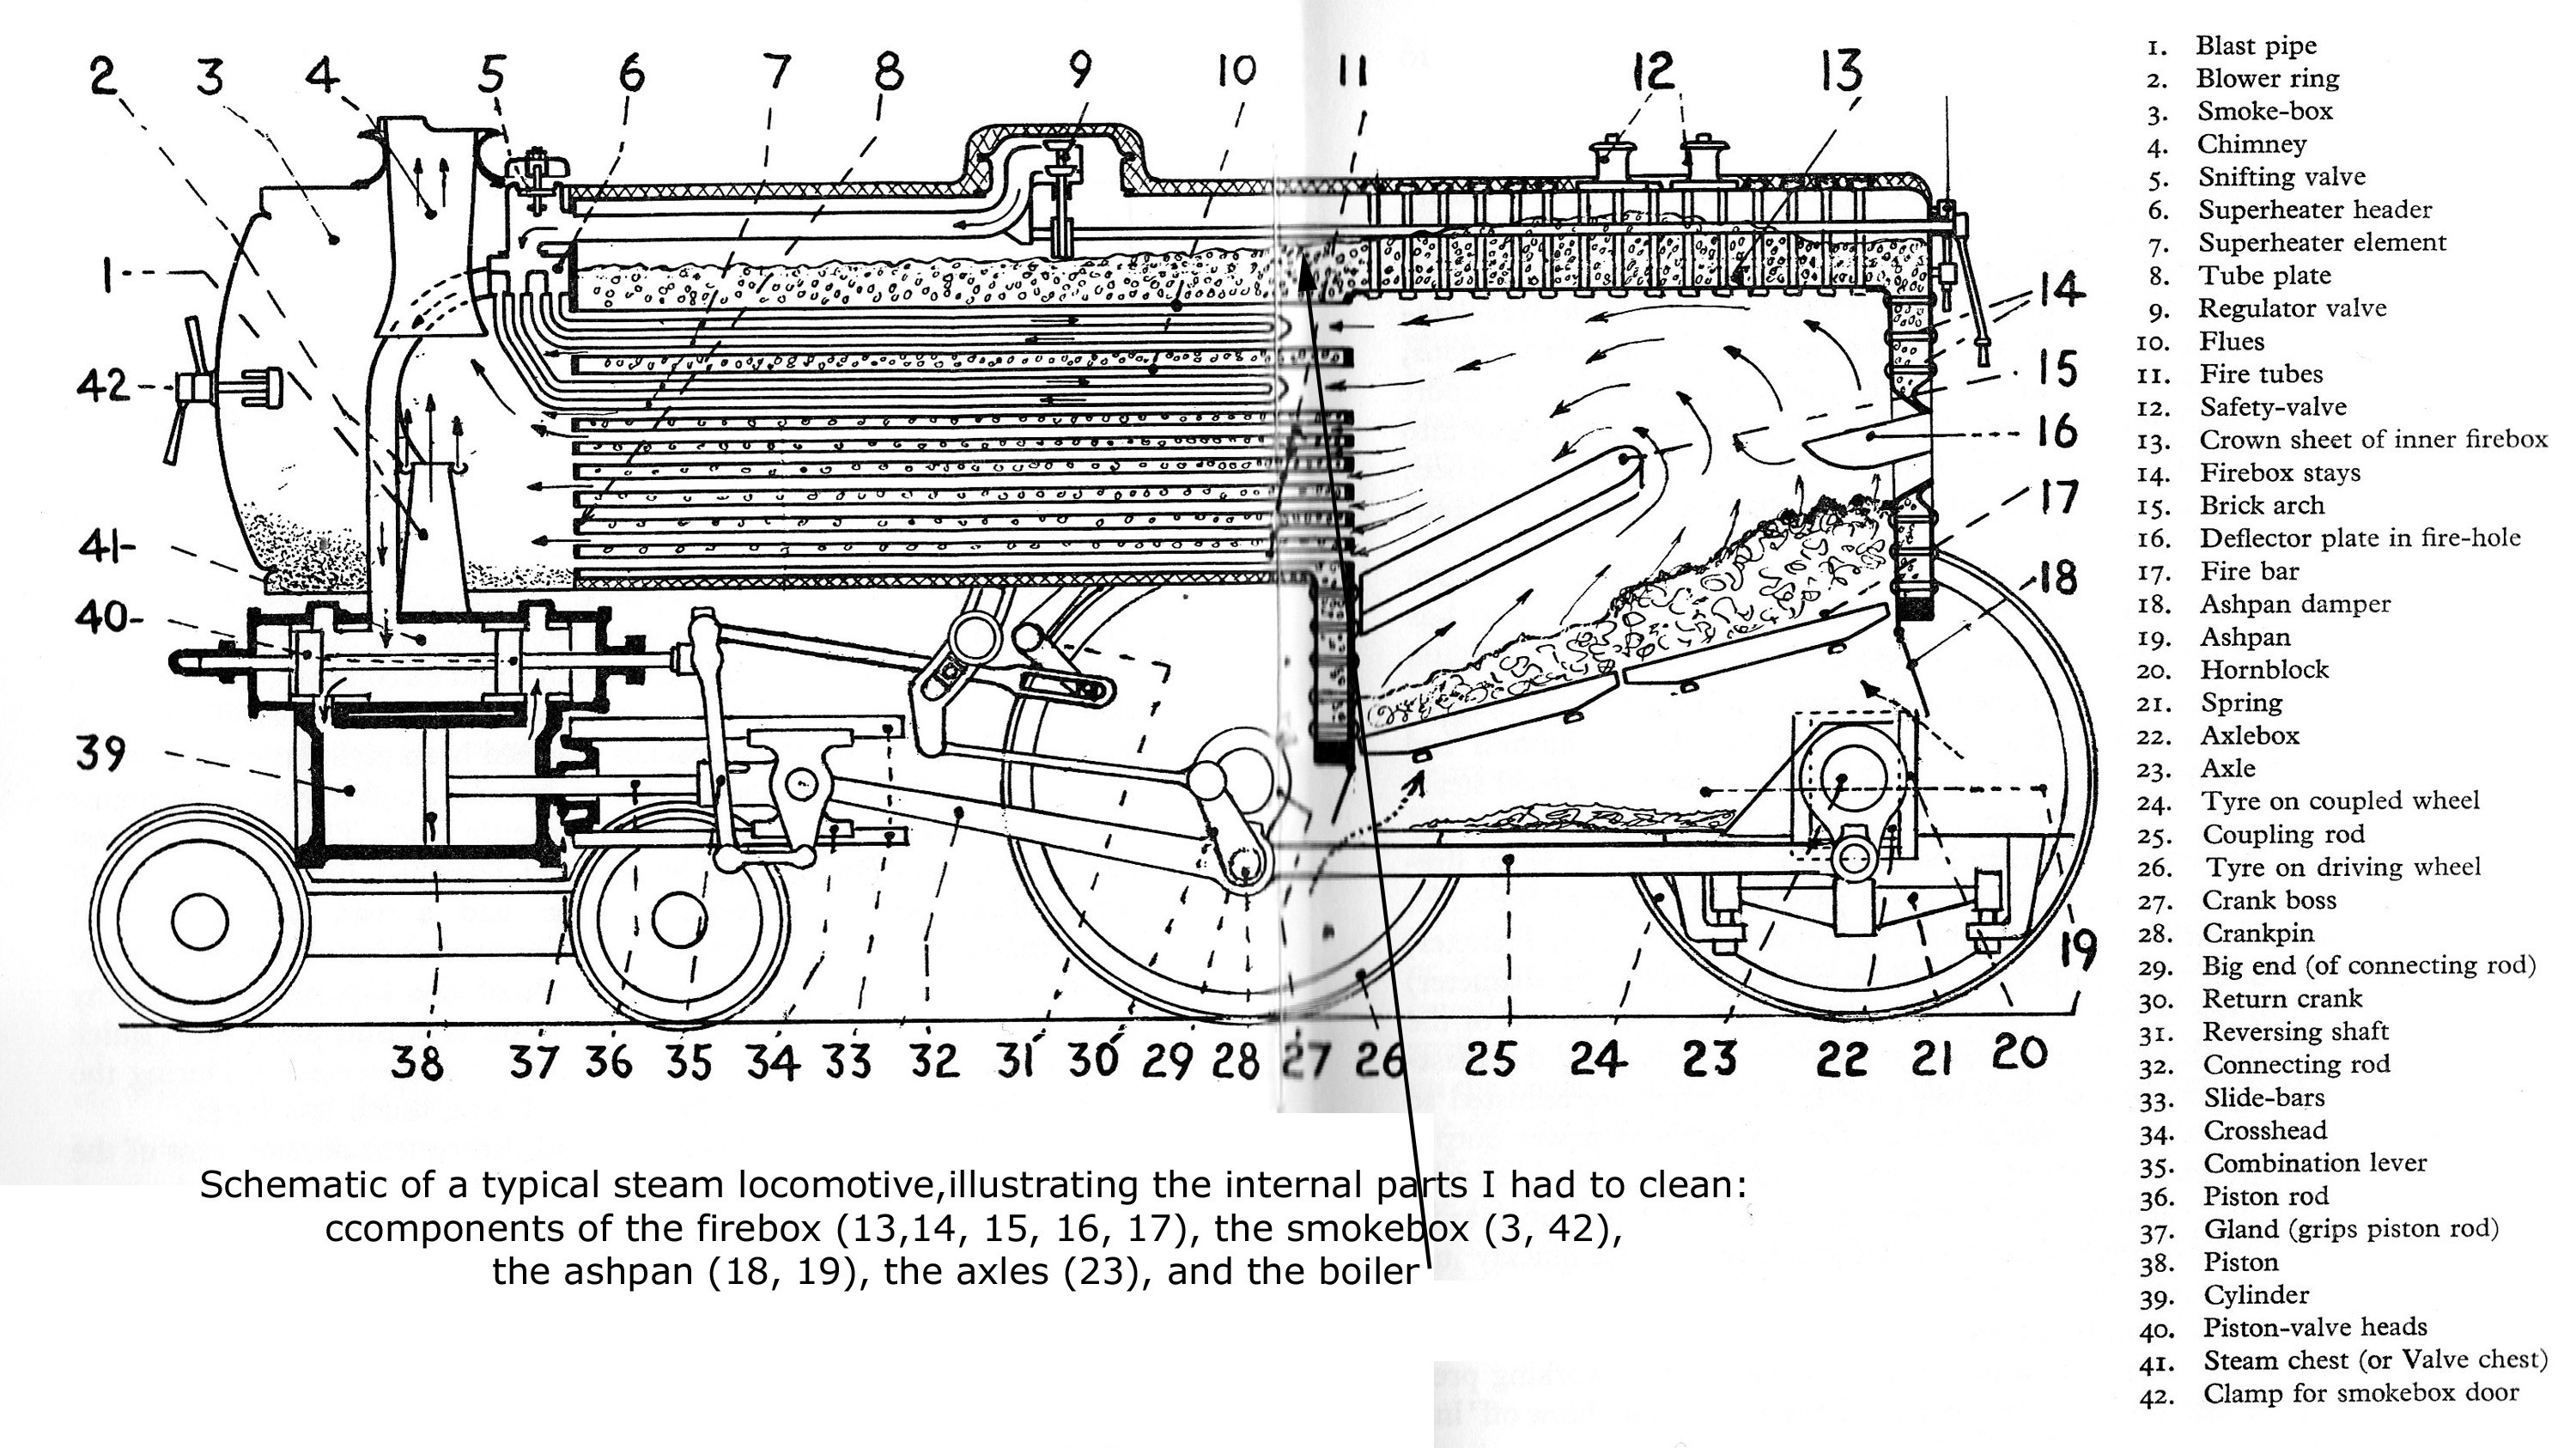 Steam Engine Parts Diagram the Steam Lo Otive Story Pdf Download Action Adventurefo Of Steam Engine Parts Diagram